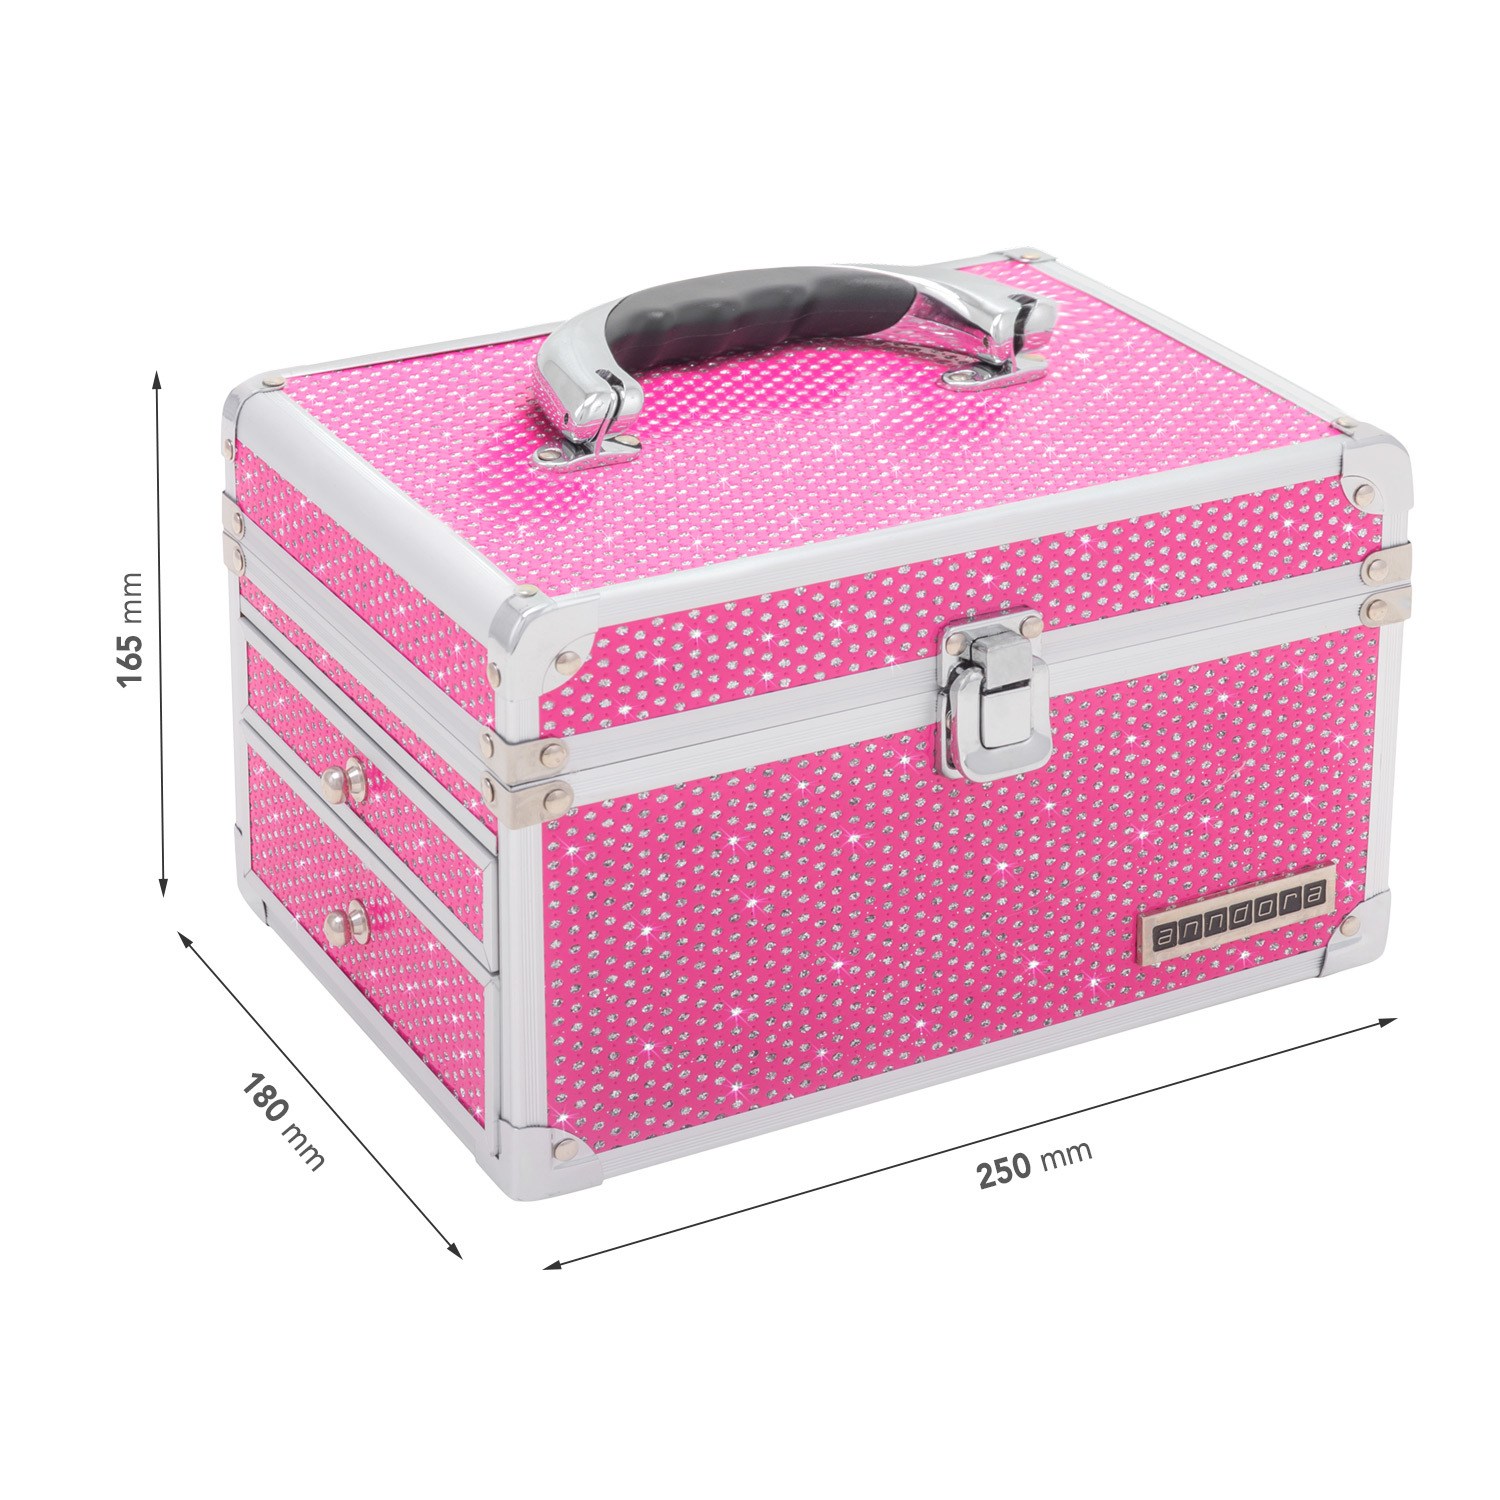 beauty case schmuckkoffer kosmetikkoffer spiegel pink glitzer b ware ebay. Black Bedroom Furniture Sets. Home Design Ideas